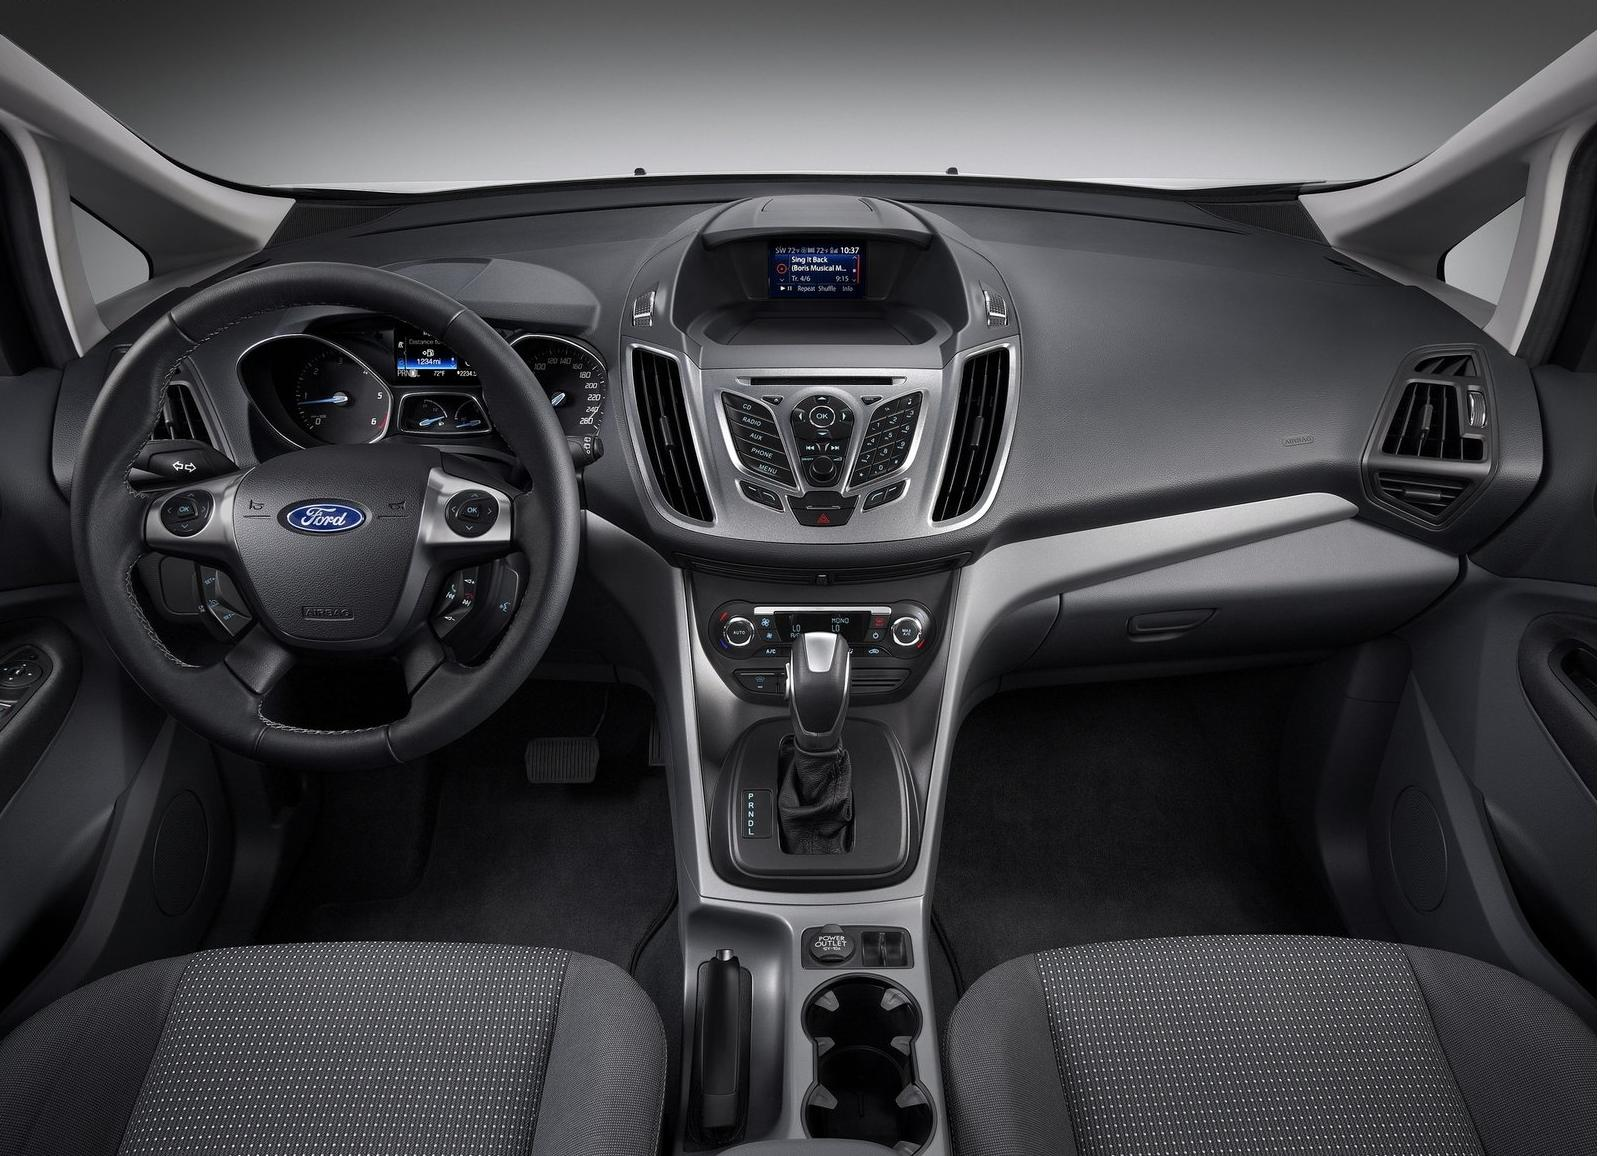 2011 Ford C-Max #26